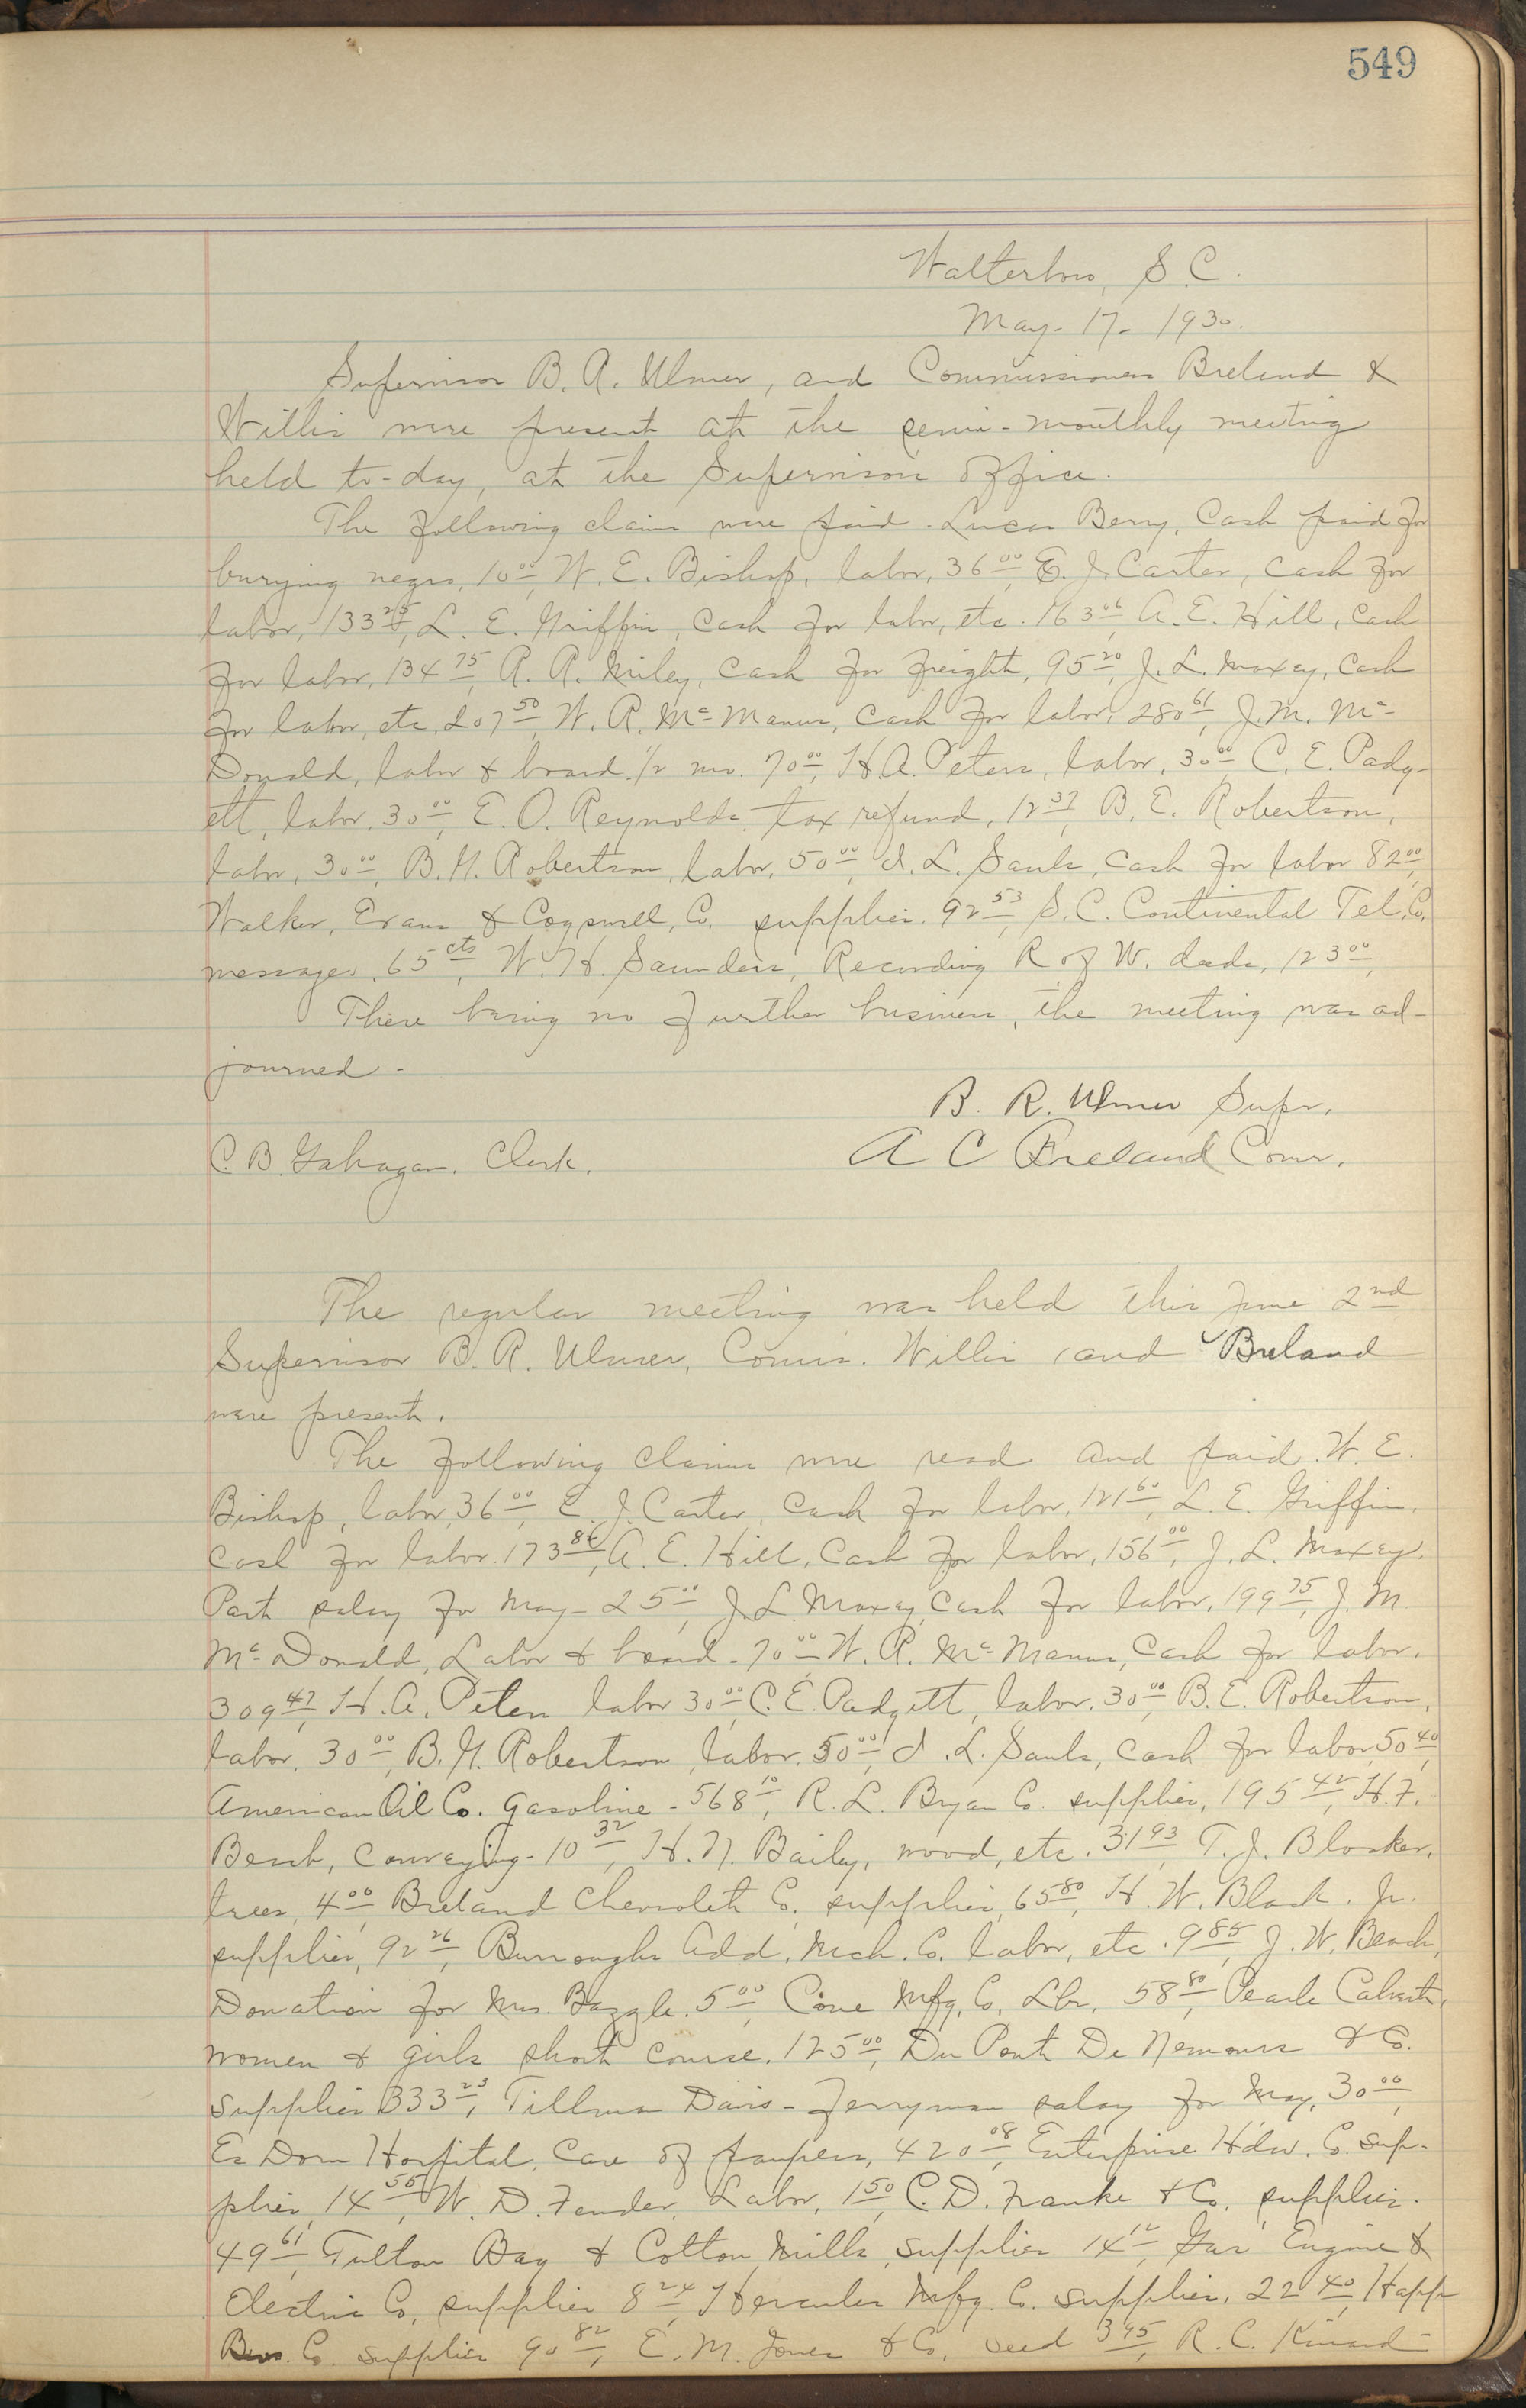 Colleton County Highway Commission Ledger, Page 549